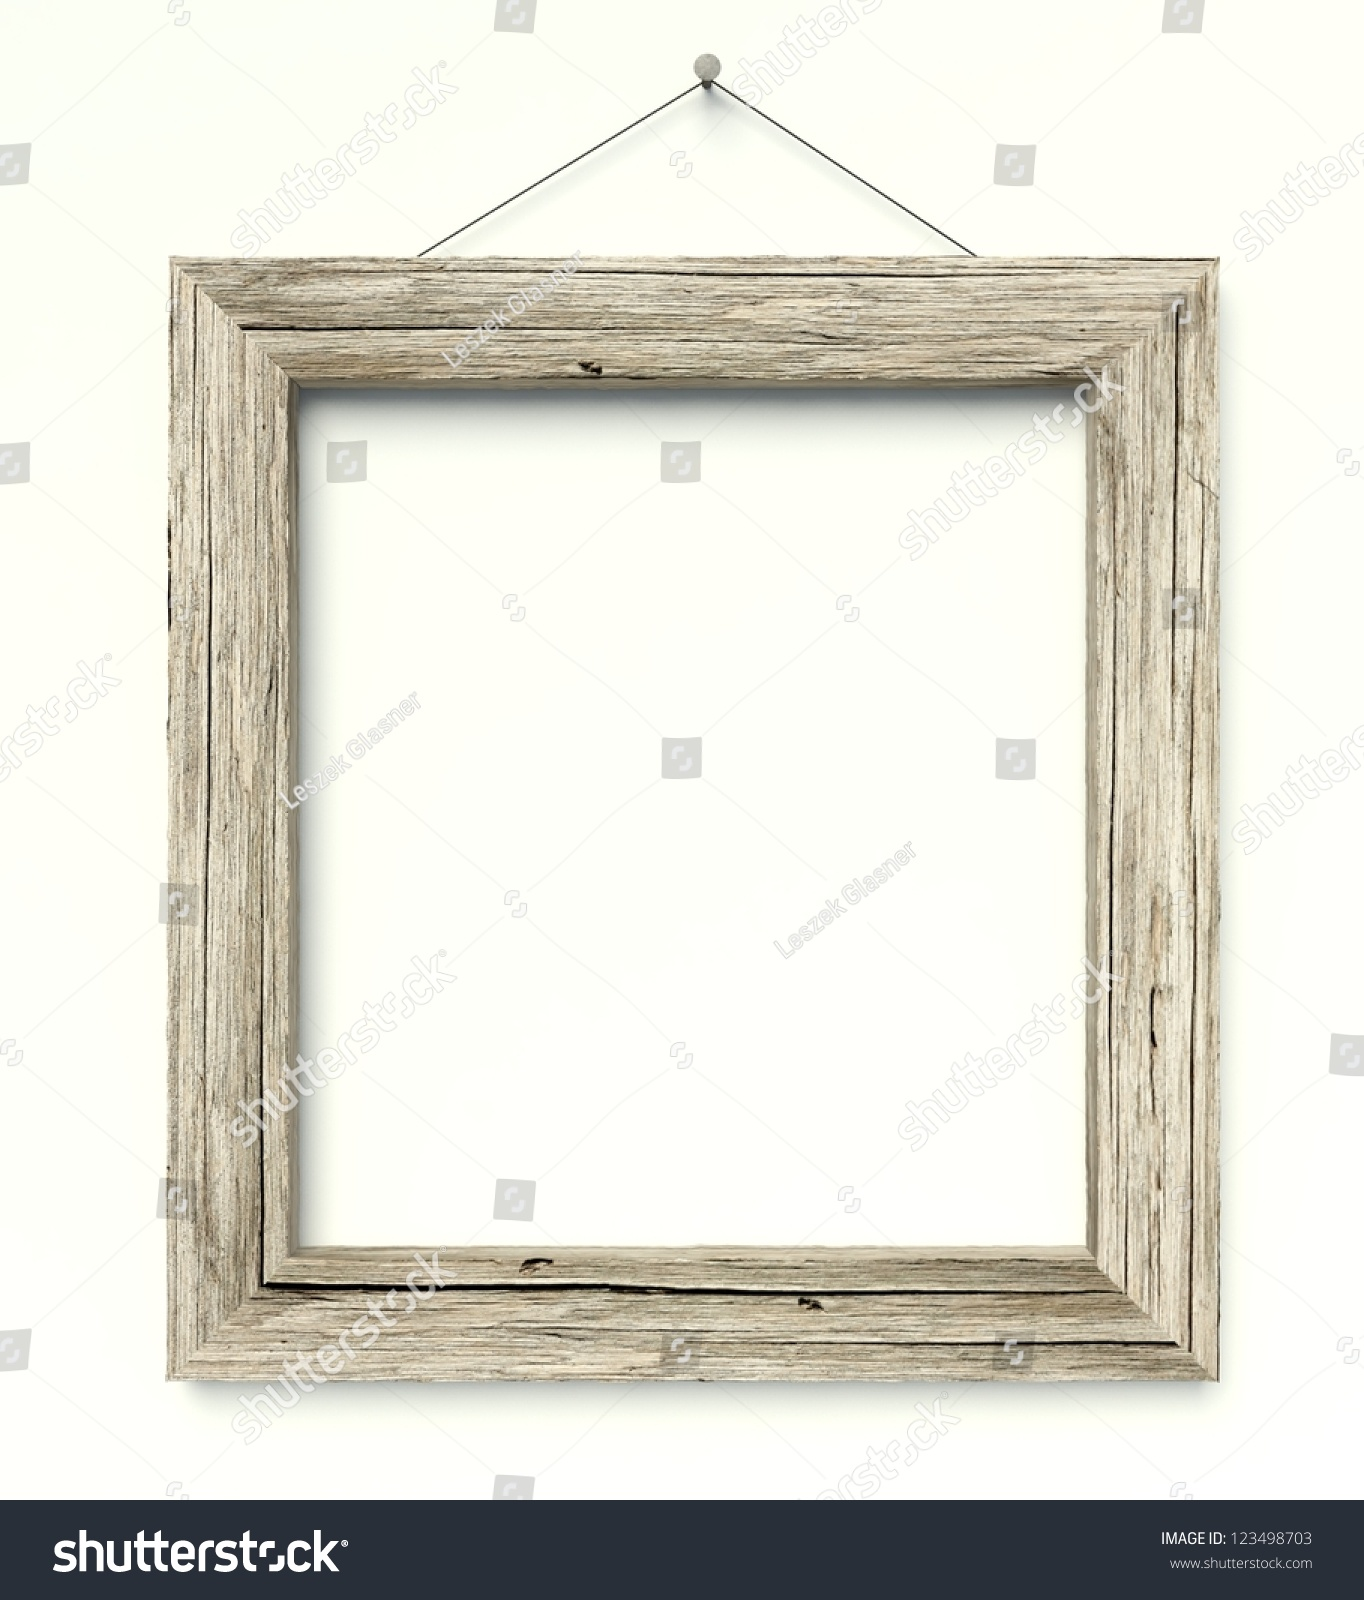 simple vintage frame for - photo #41